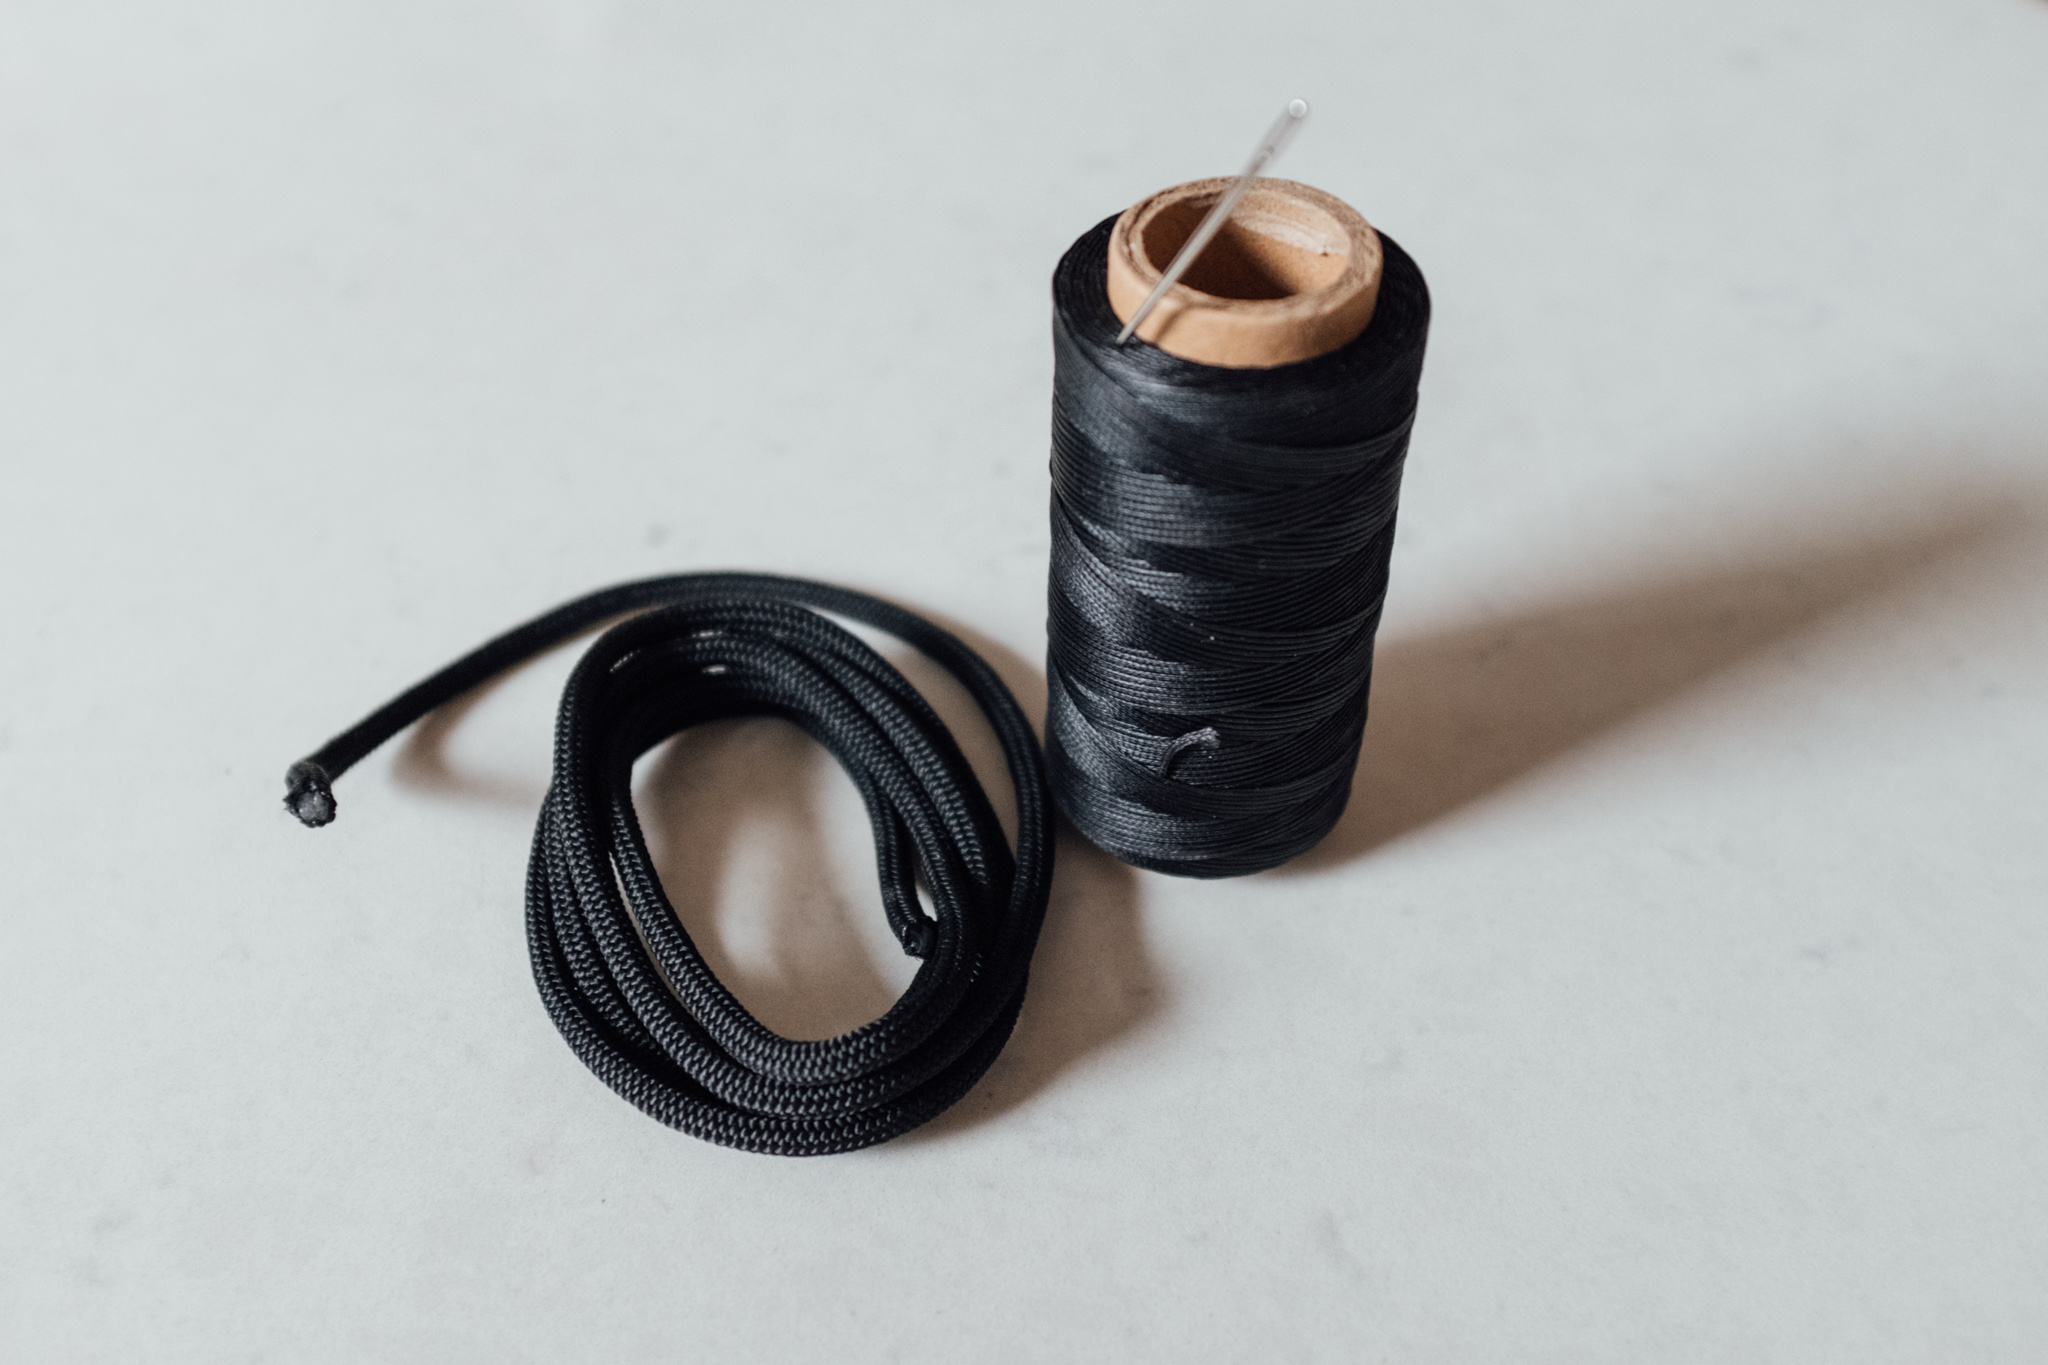 Wax thread, simple climbing line and a big needle is pretty much all you need.